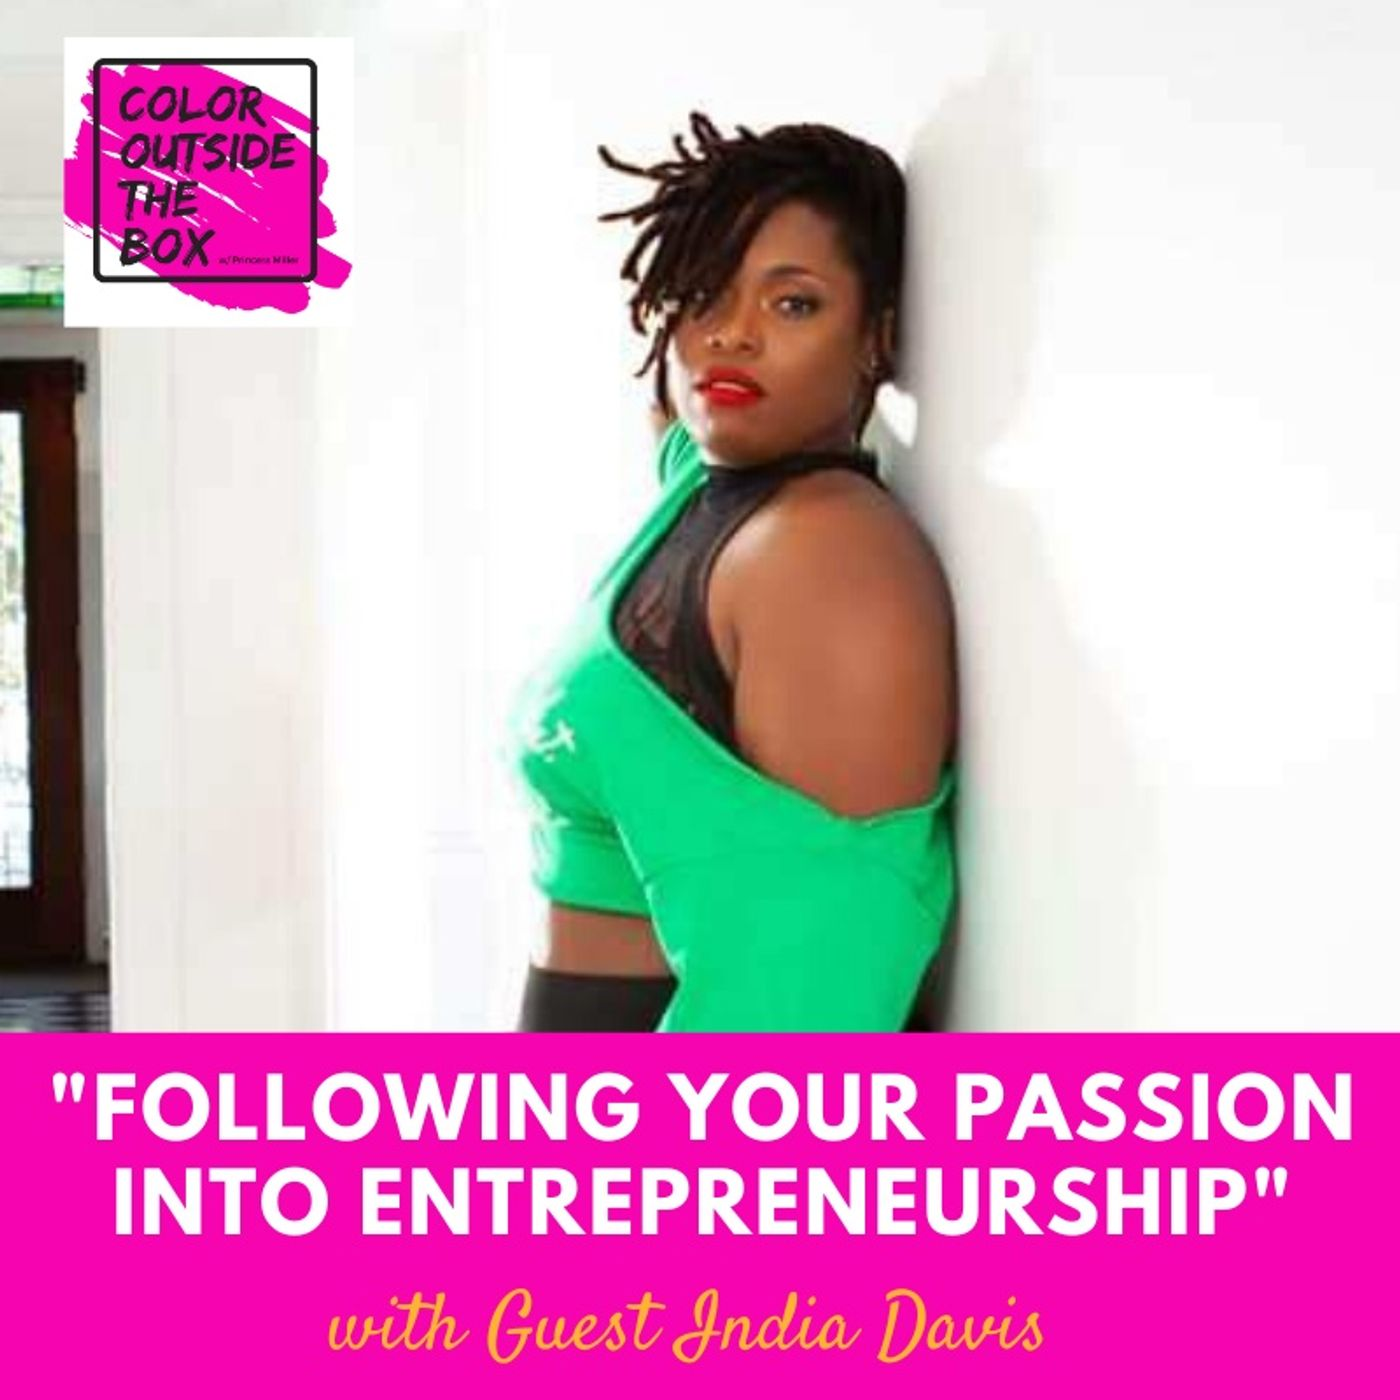 Following Your Passion into Entrepreneurship with Guest India Davis